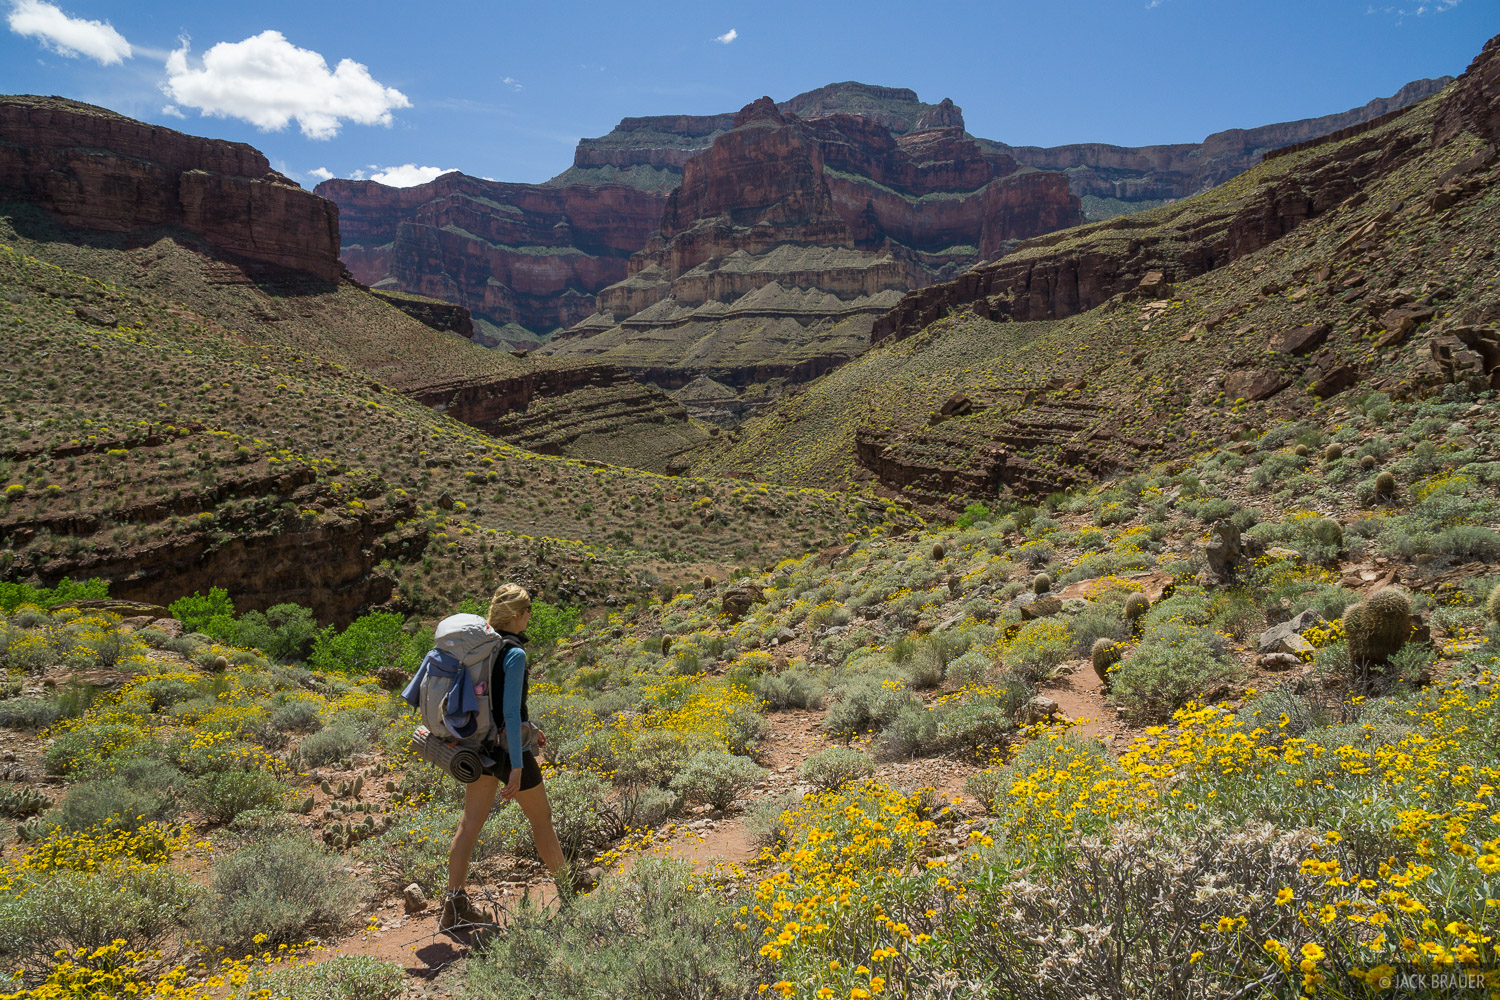 Arizona, Grand Canyon, wildflowers, hiking, photo